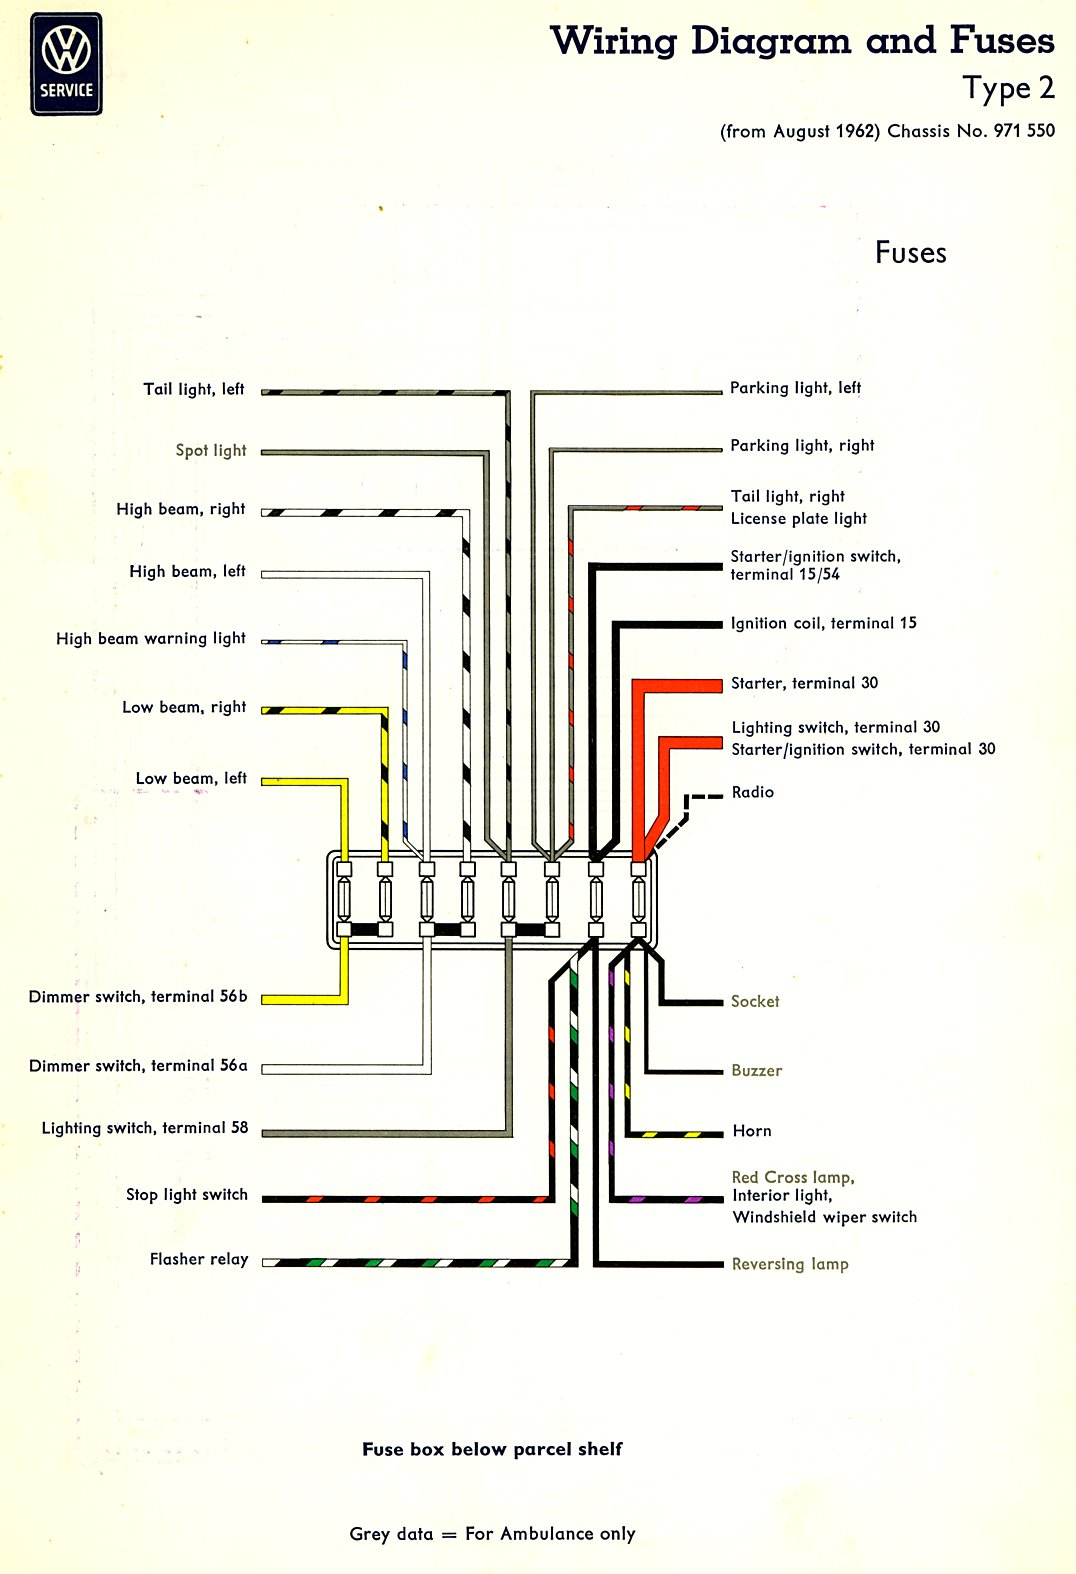 bus_63_fuses thesamba com type 2 wiring diagrams 1969 C10 at mifinder.co